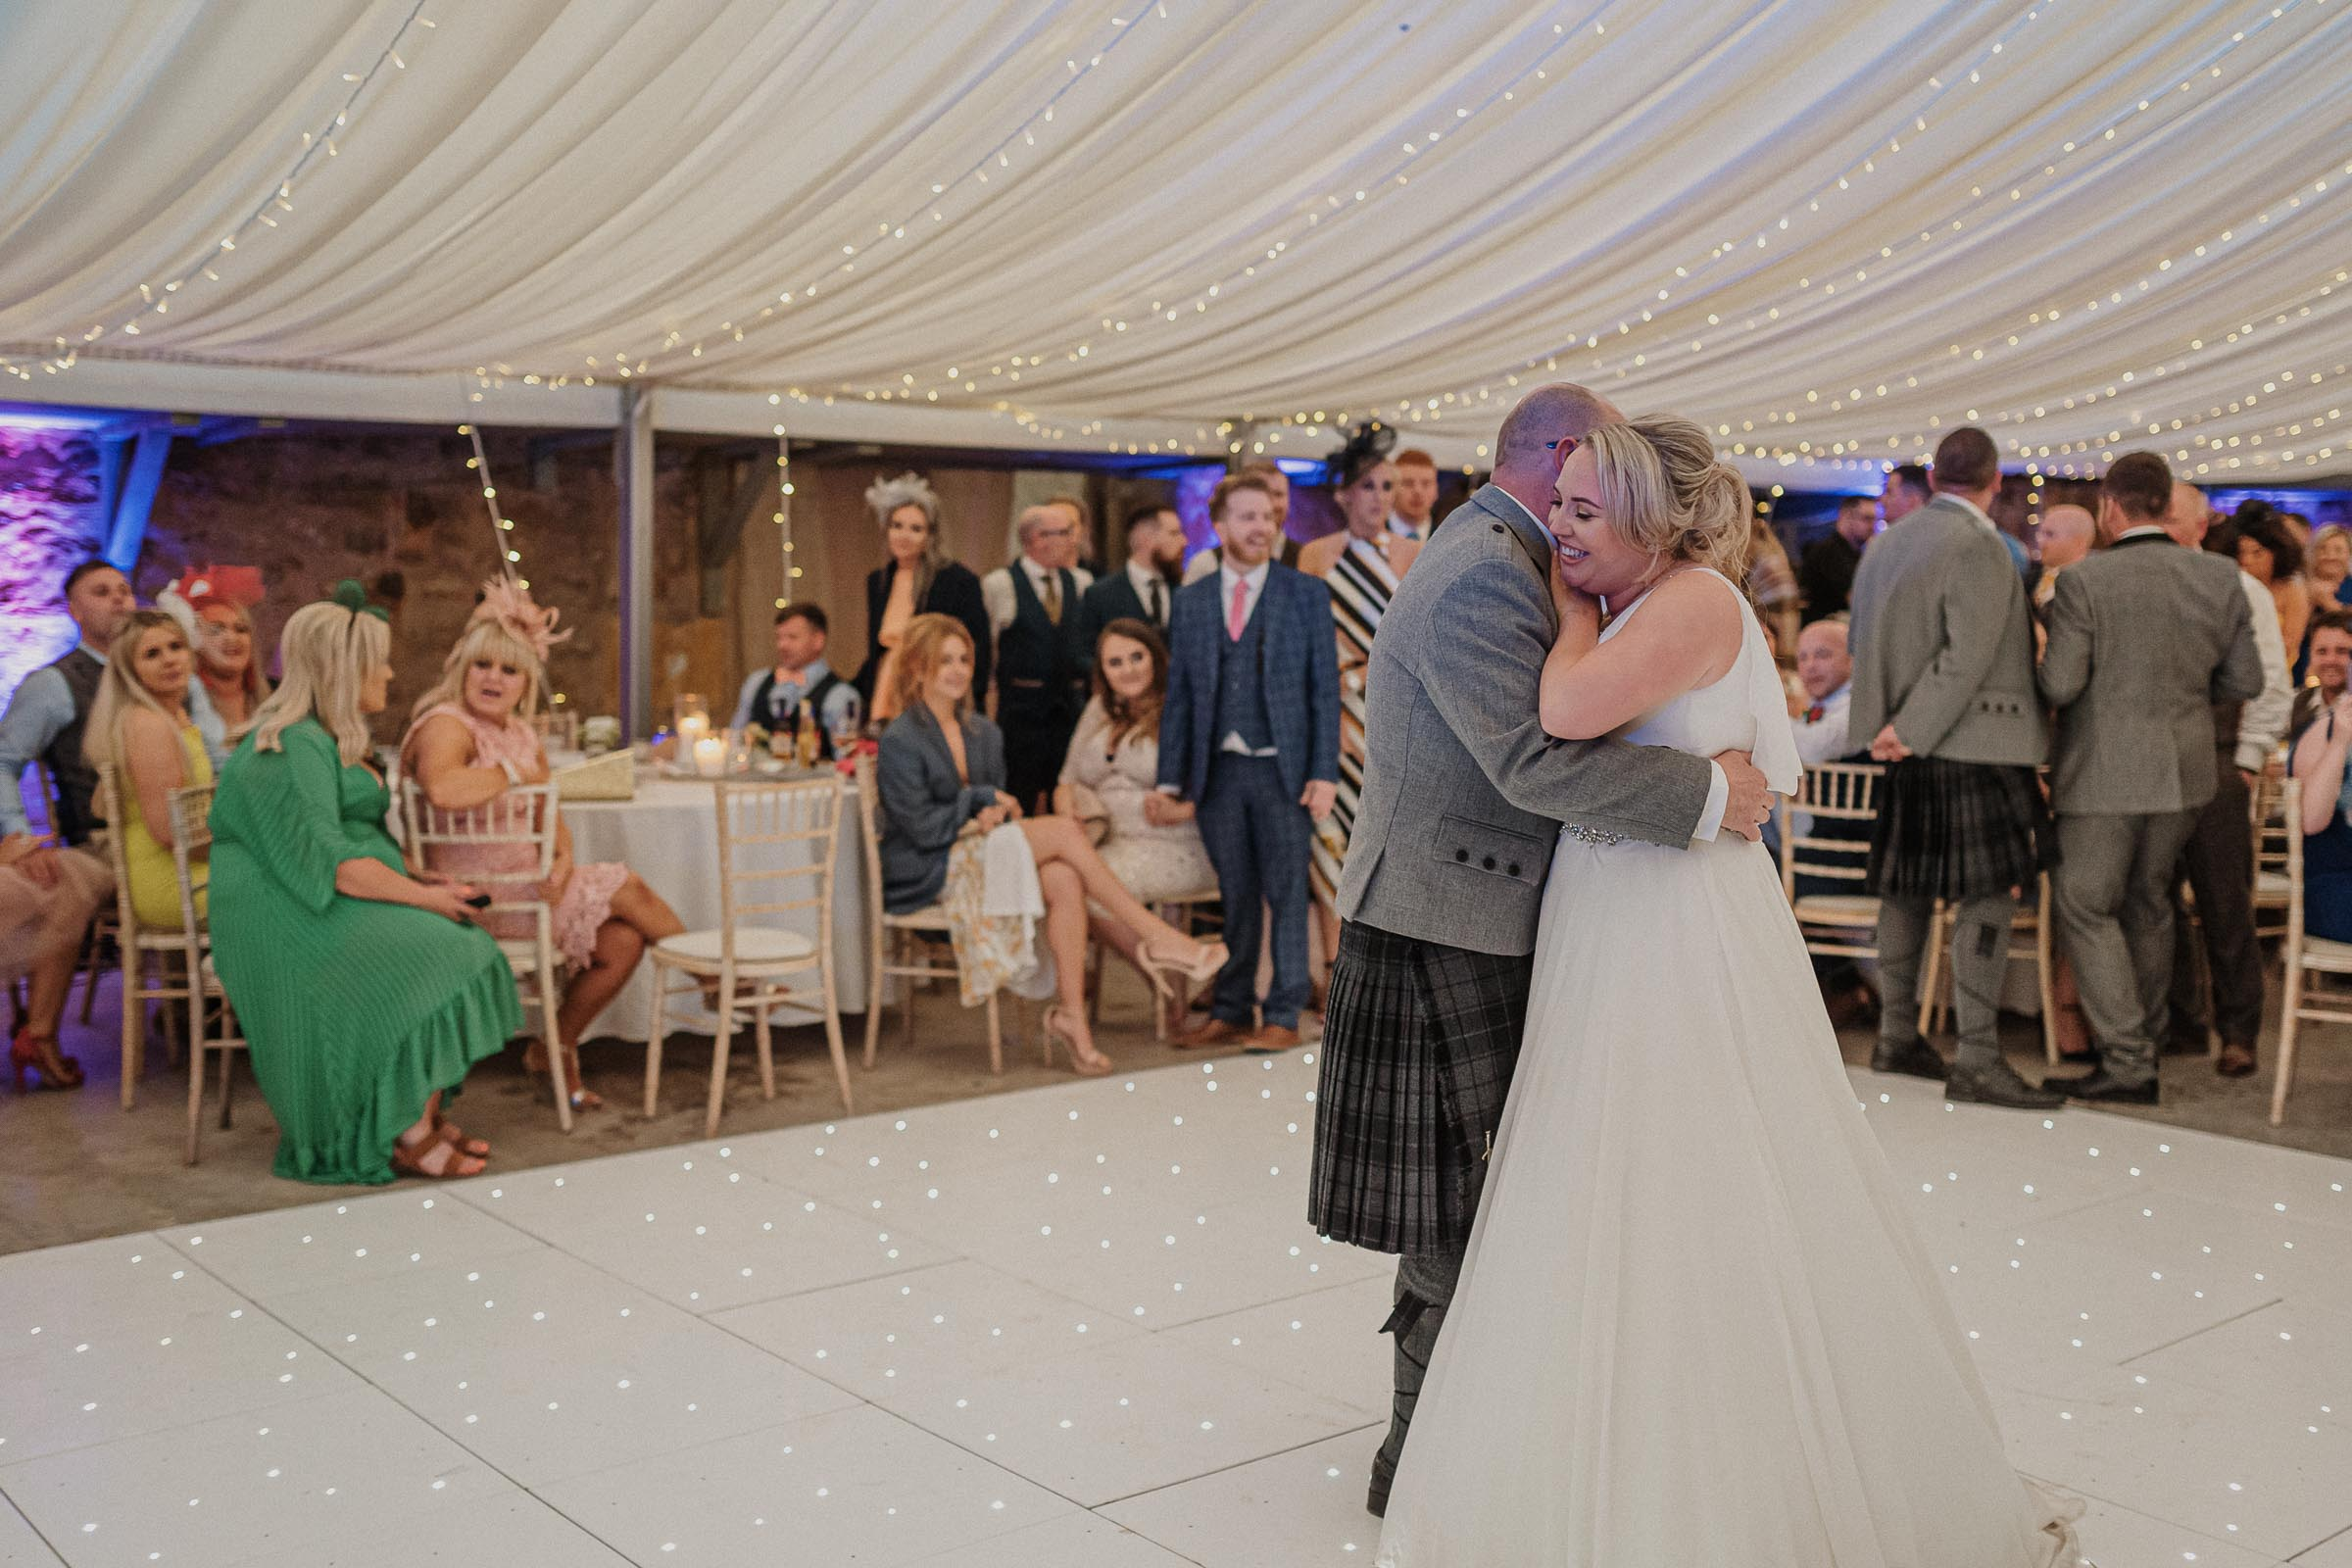 cowshed-crail-wedding-dearlyphotography (26 of 26).jpg